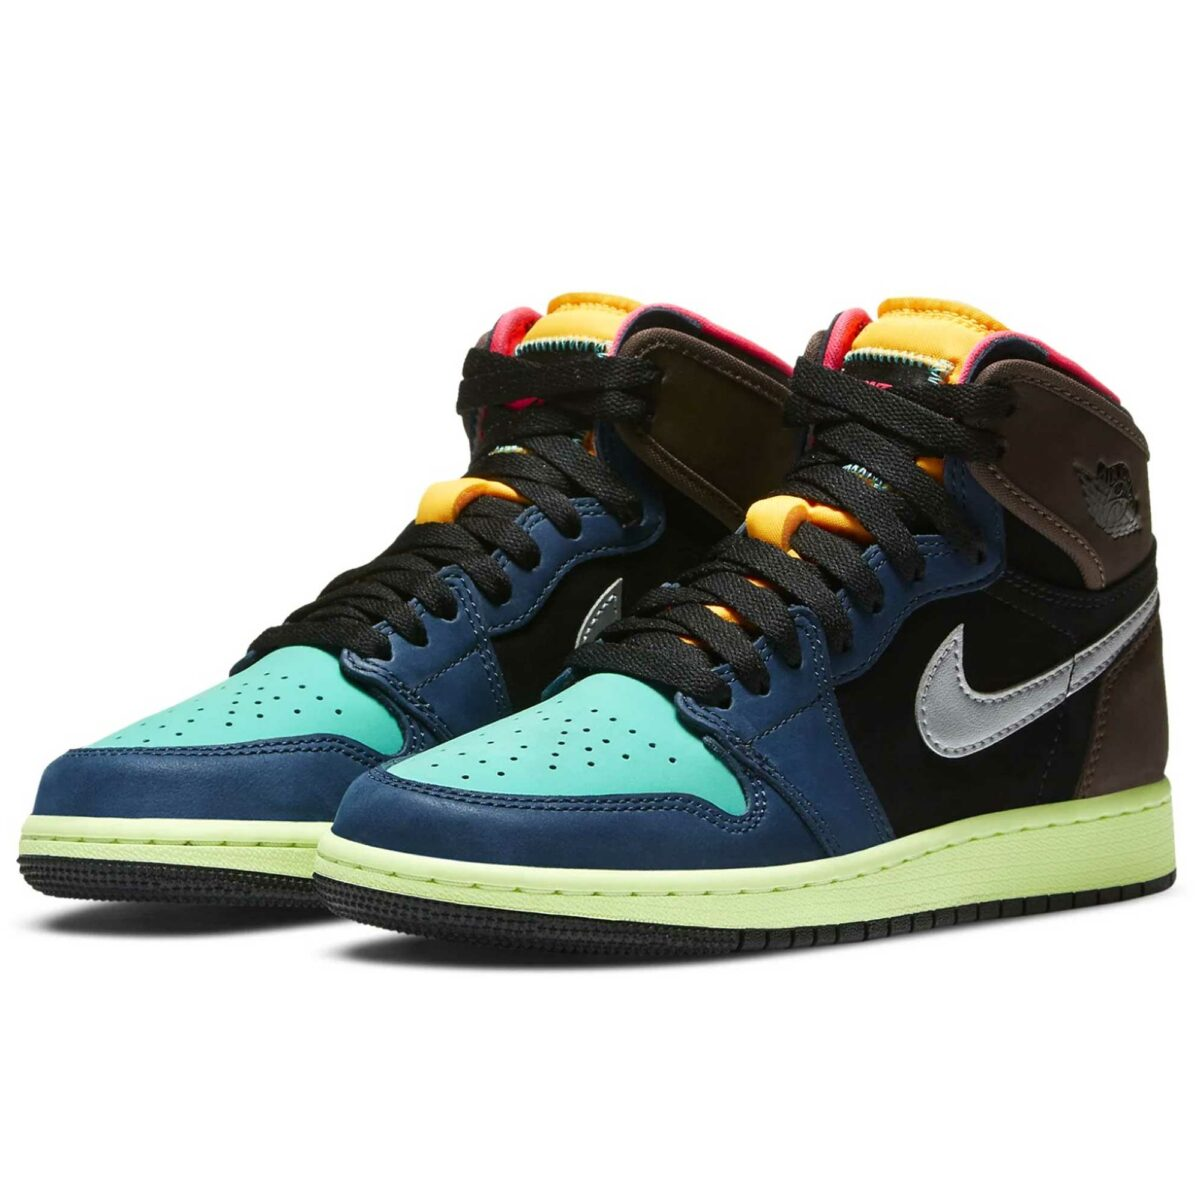 nike air Jordan 1 retro high og bio hack 575441_201 купить